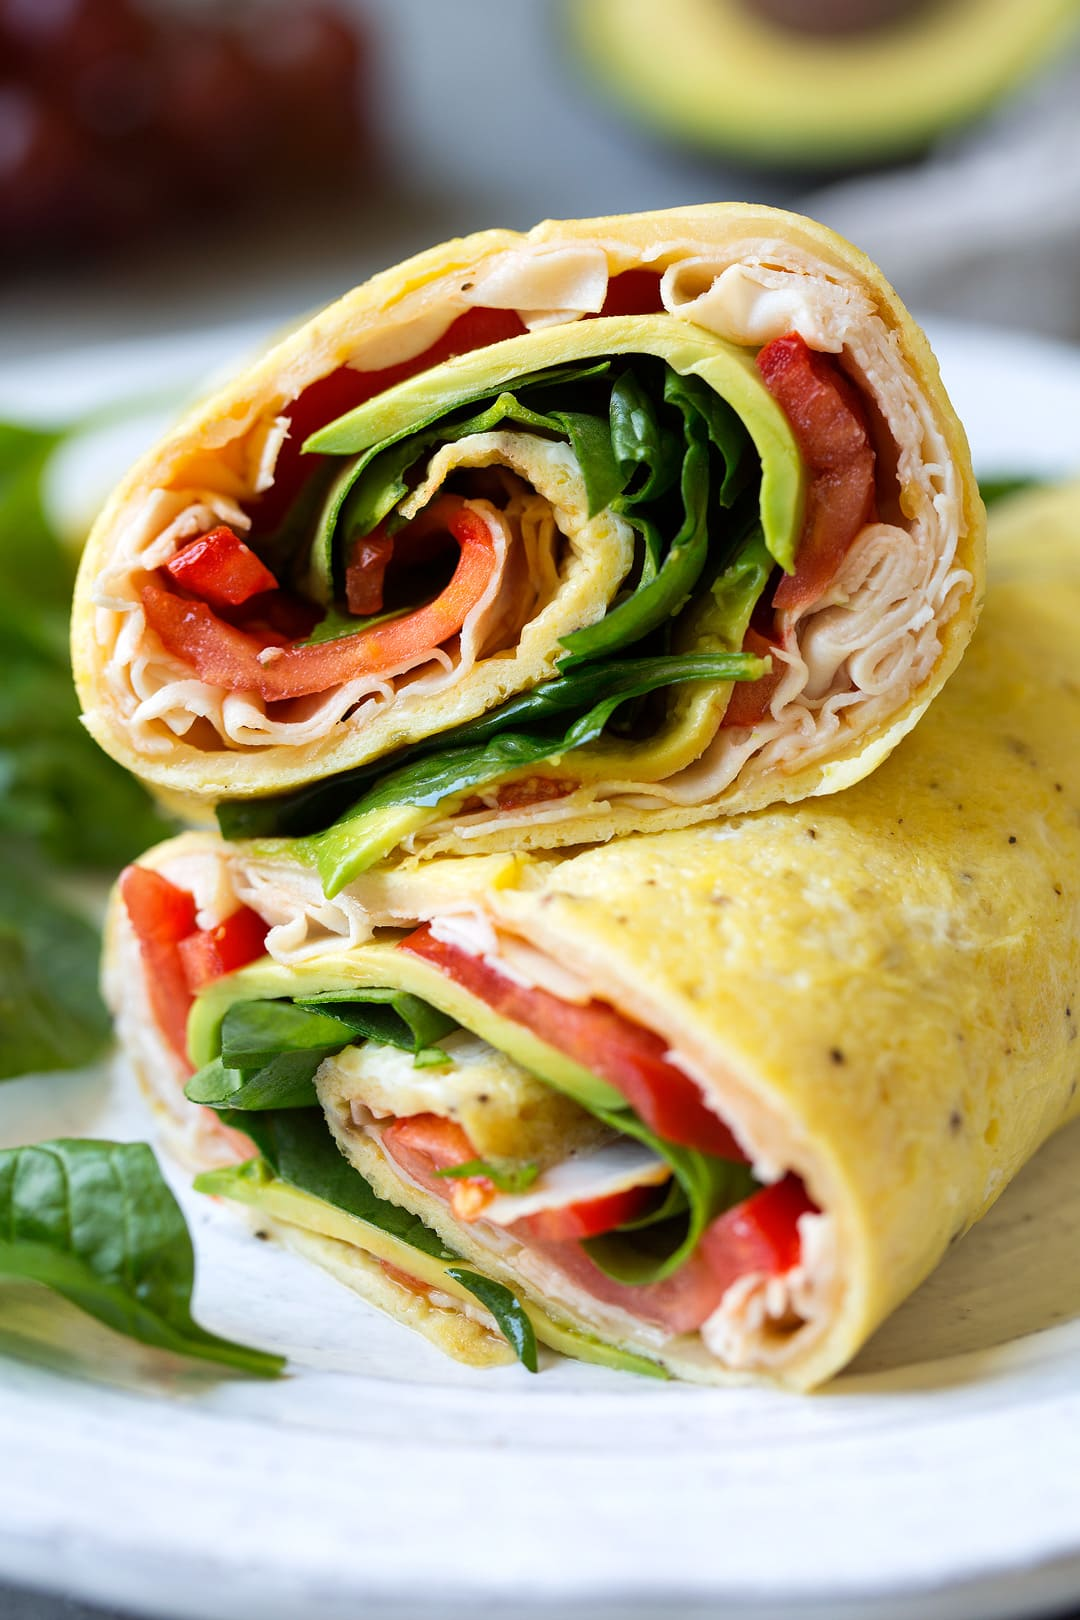 Weight Watchers Wabbit Wrap Recipe also File Bologna lunch meat style sausage moreover A Fun Back To School Bento Lunch Idea likewise Sliced Turkey Meat Brands likewise Snacks 9. on oscar mayer deli sliced turkey